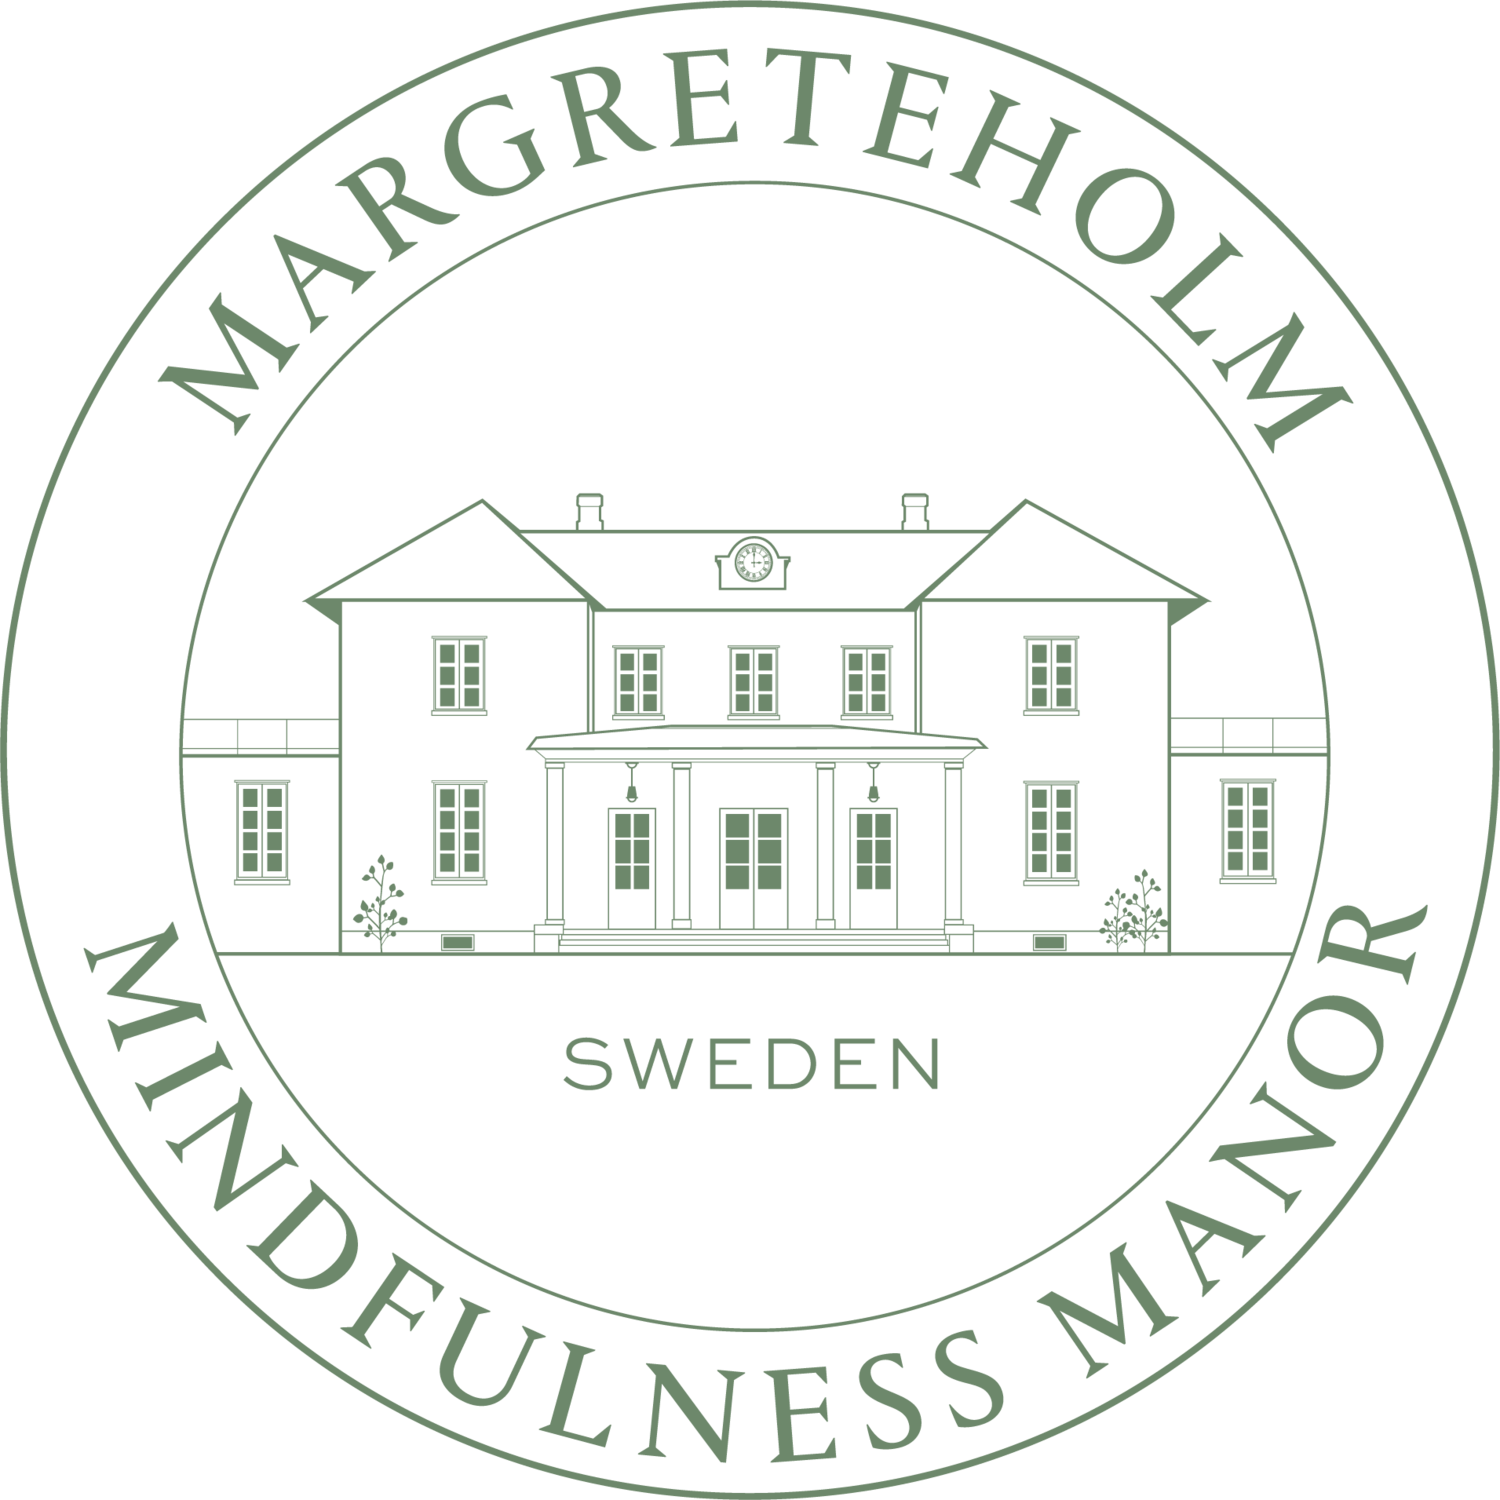 Margreteholm Mindfulness Manor